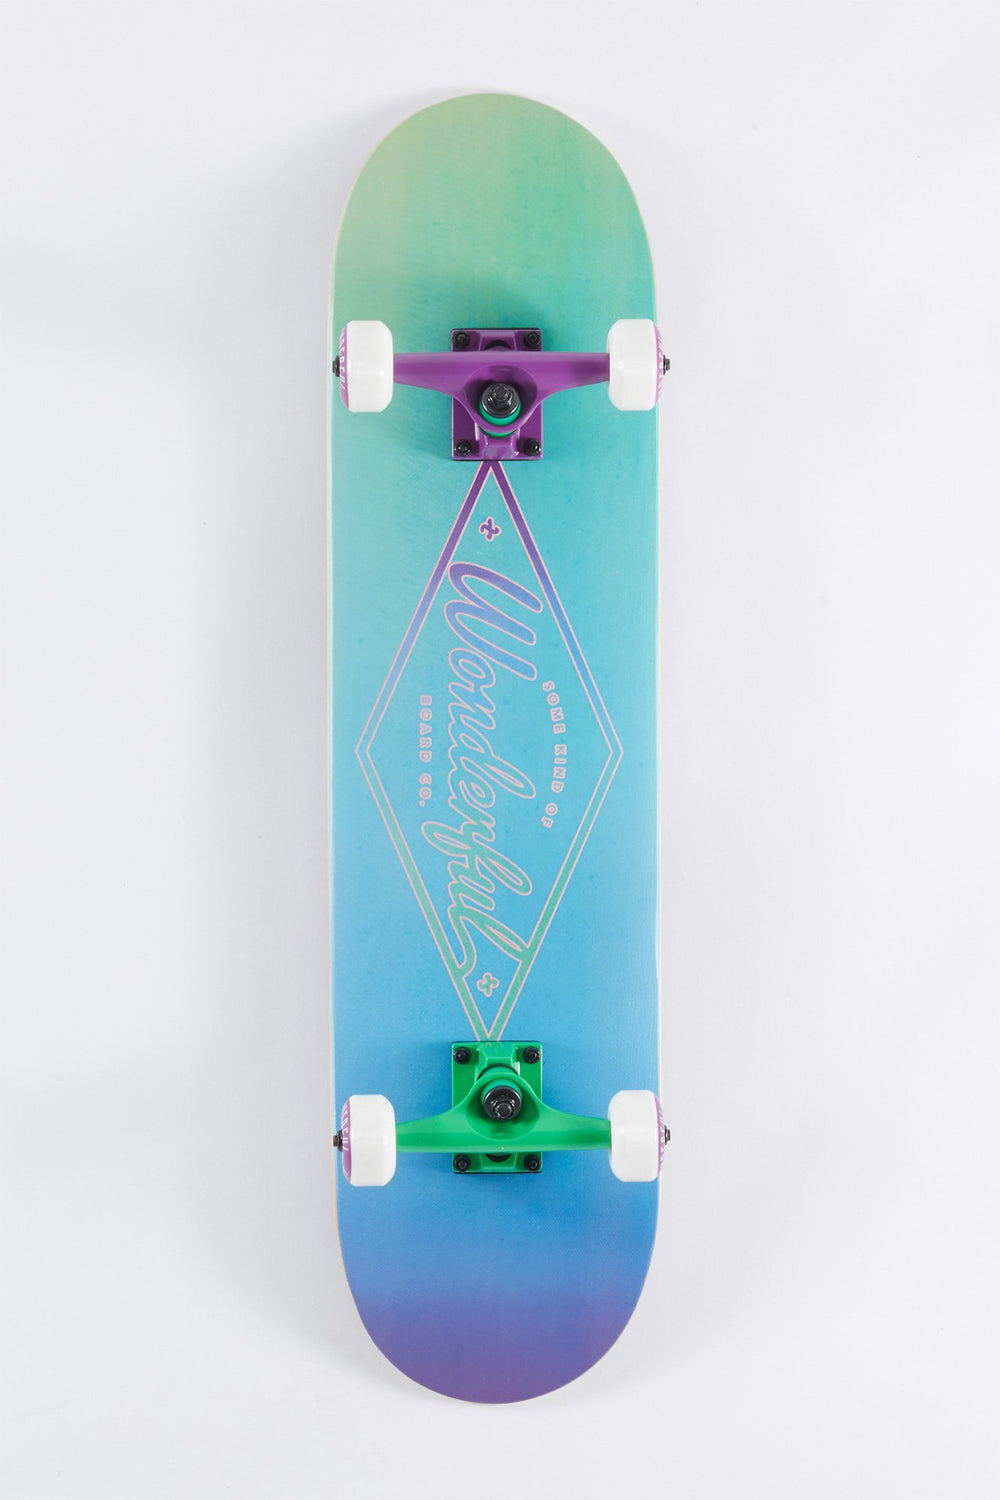 Wonderful Gradient Logo Skateboard 7.75